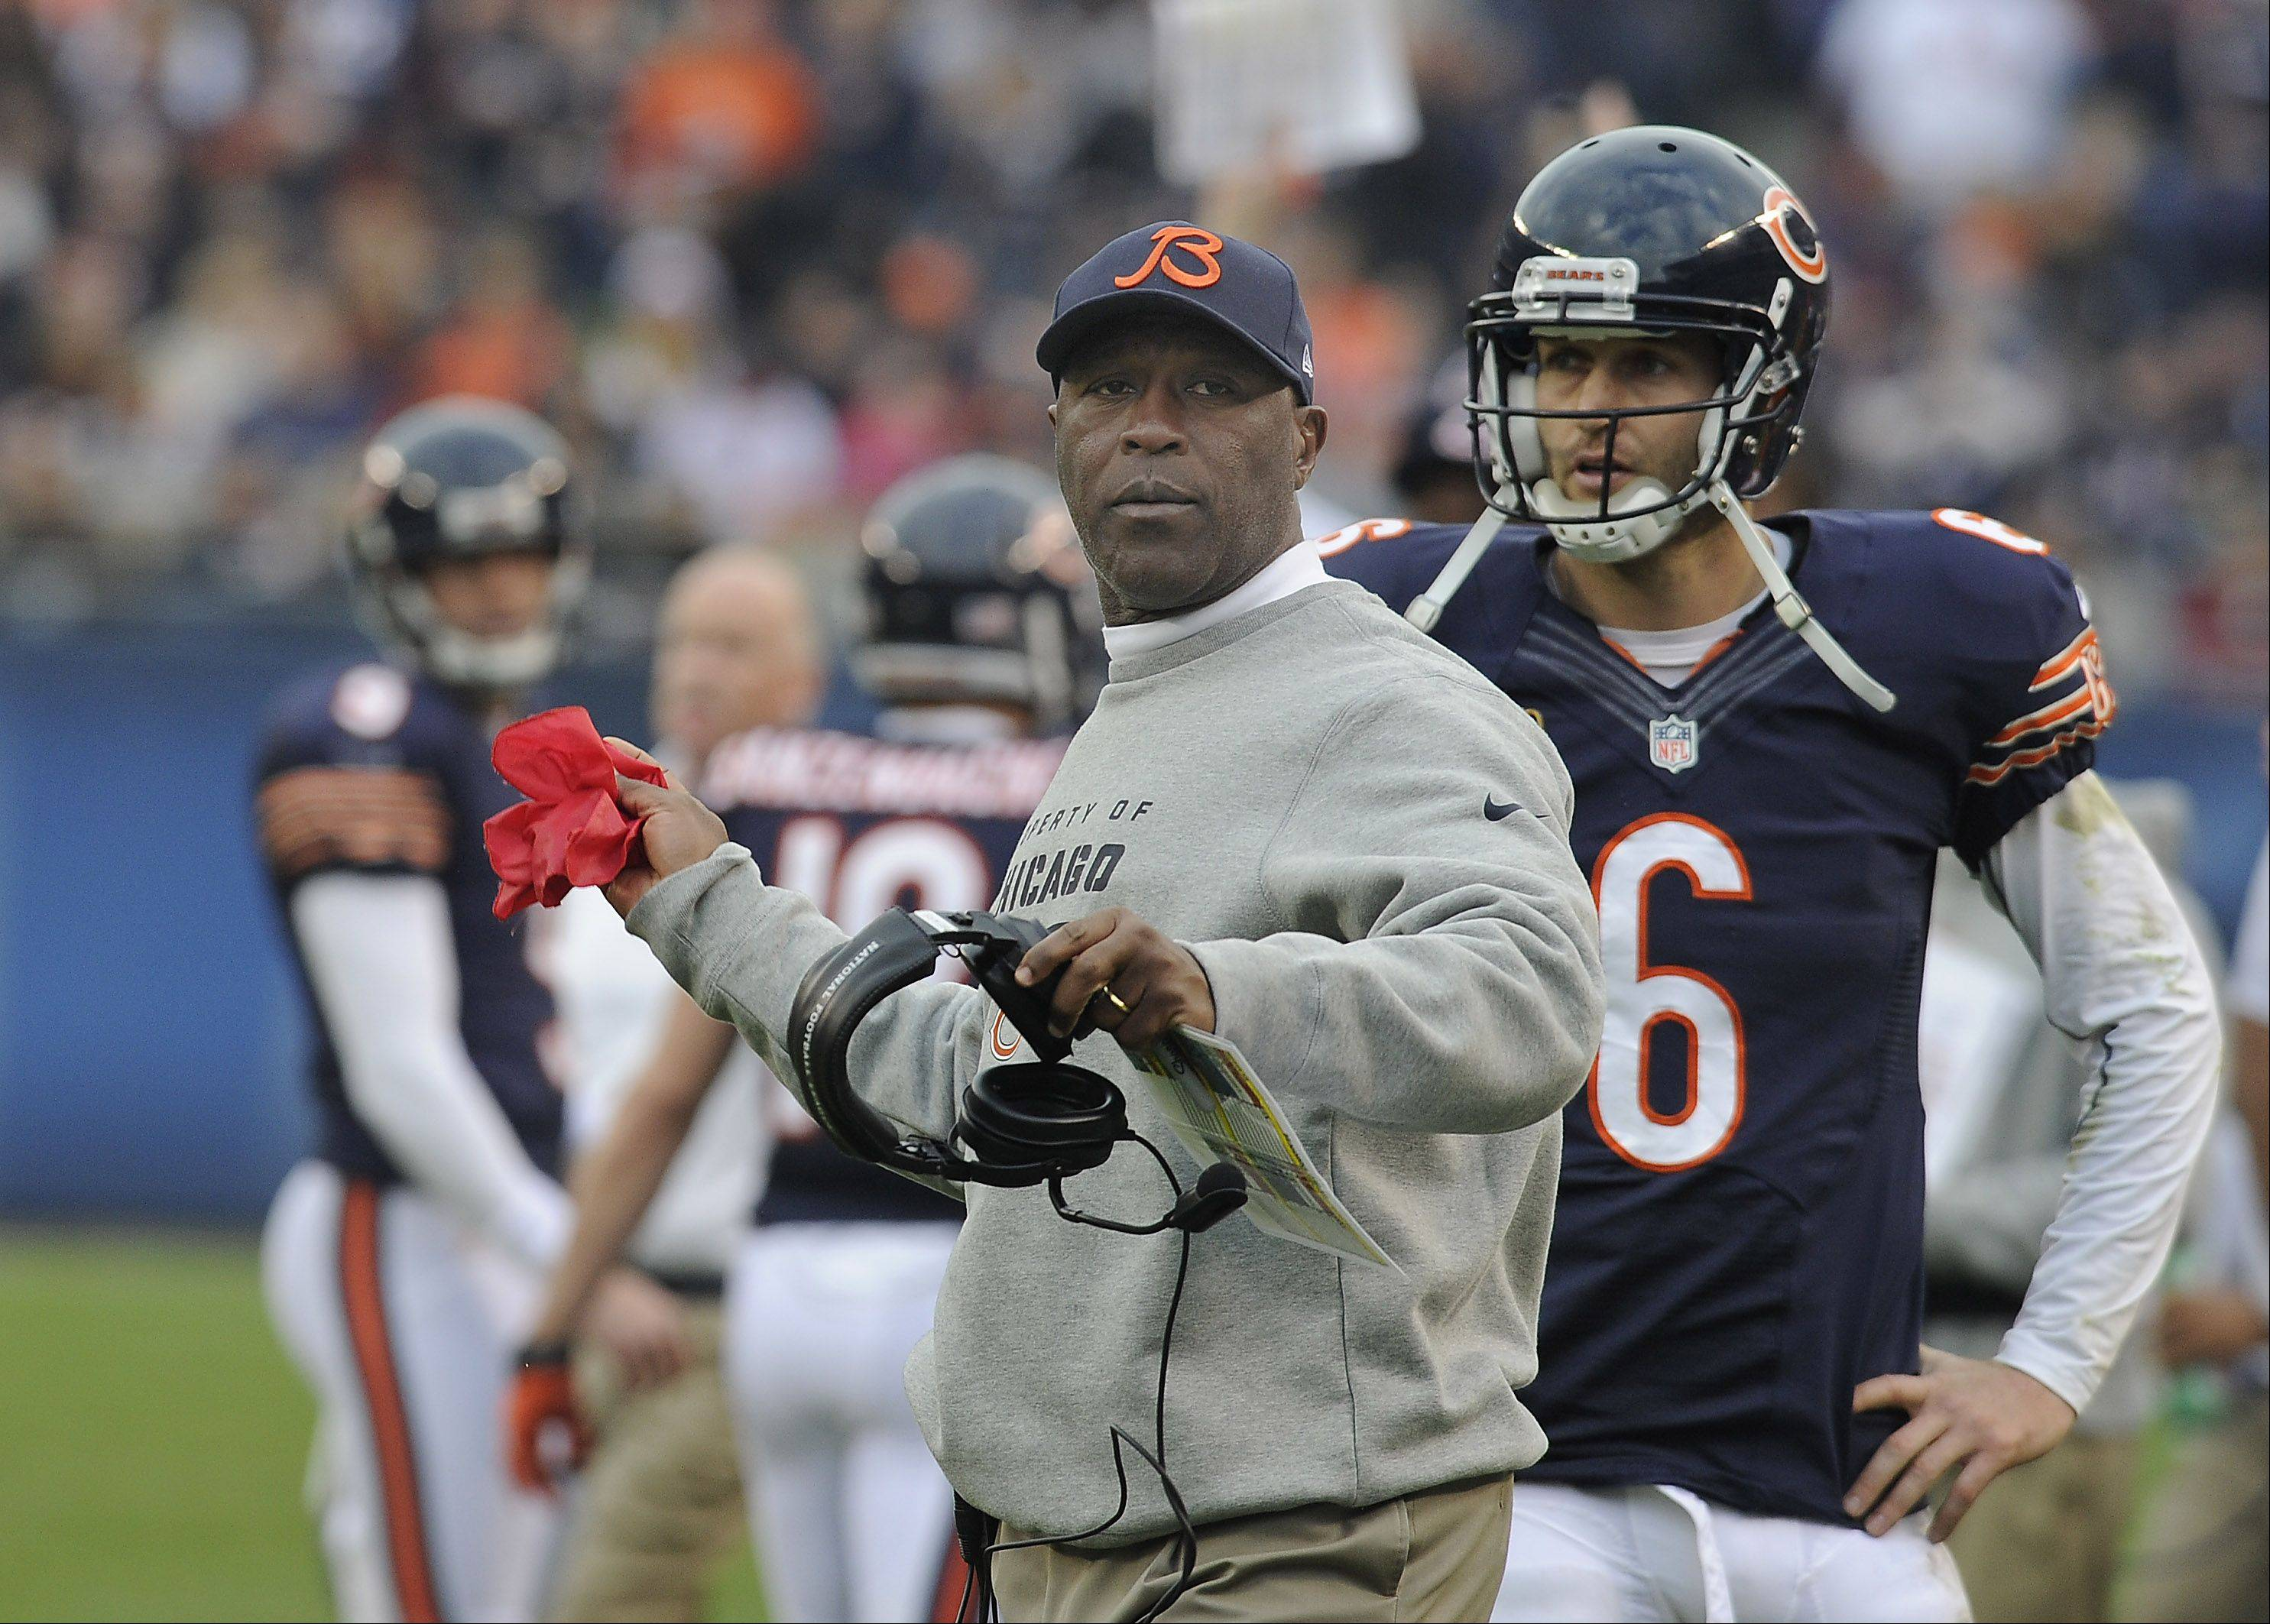 Bears coach Lovie Smith prepares to throw the challenge flag concerning a Seahawks touchdown in the fourth of a Bears loss to the Seahawks at Soldier Field in Chicago.